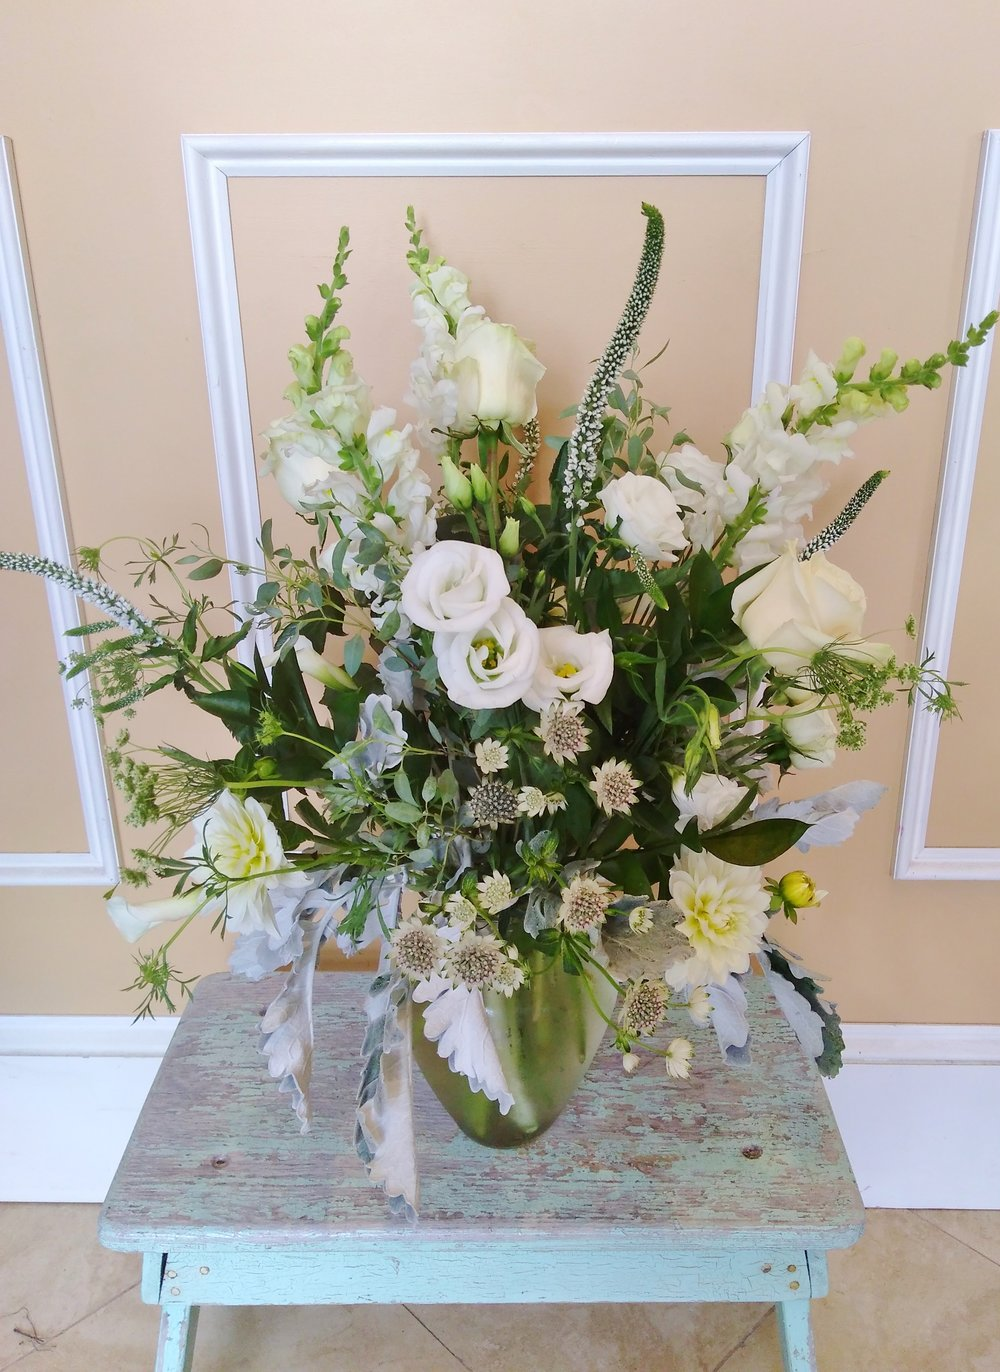 A9 $85-$150 Medium-tall classical style vase arrangement. $100 as shown.